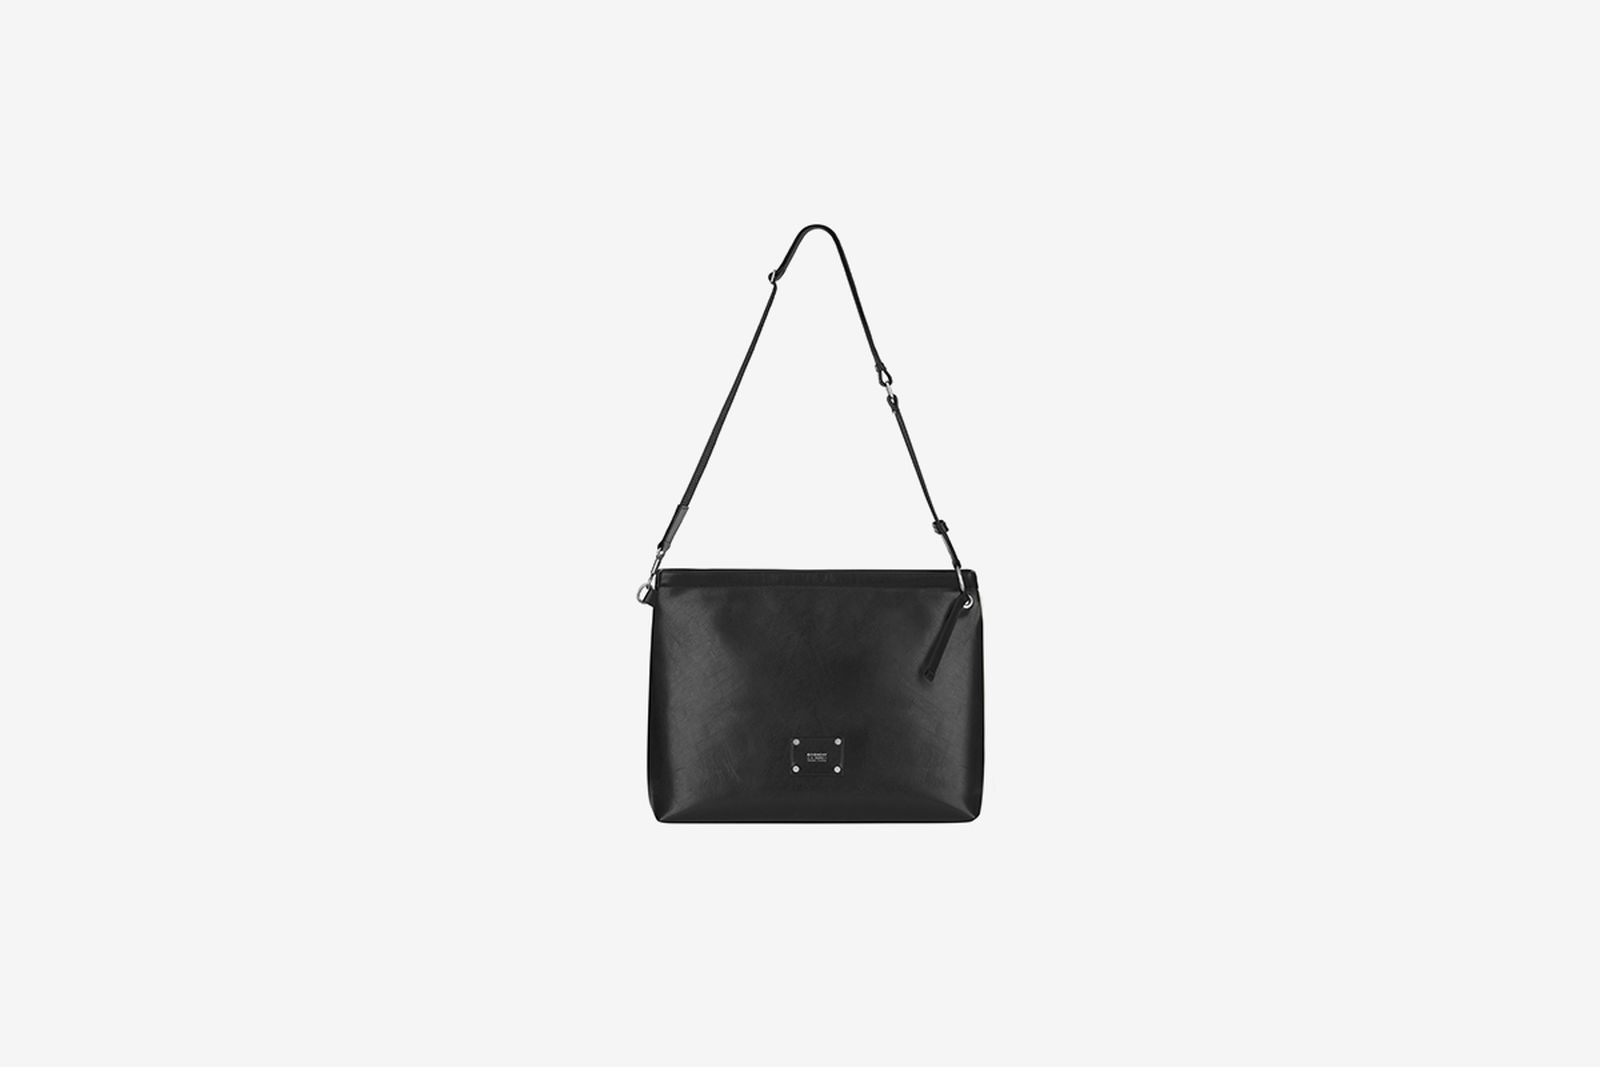 givenchy tag accessories 1